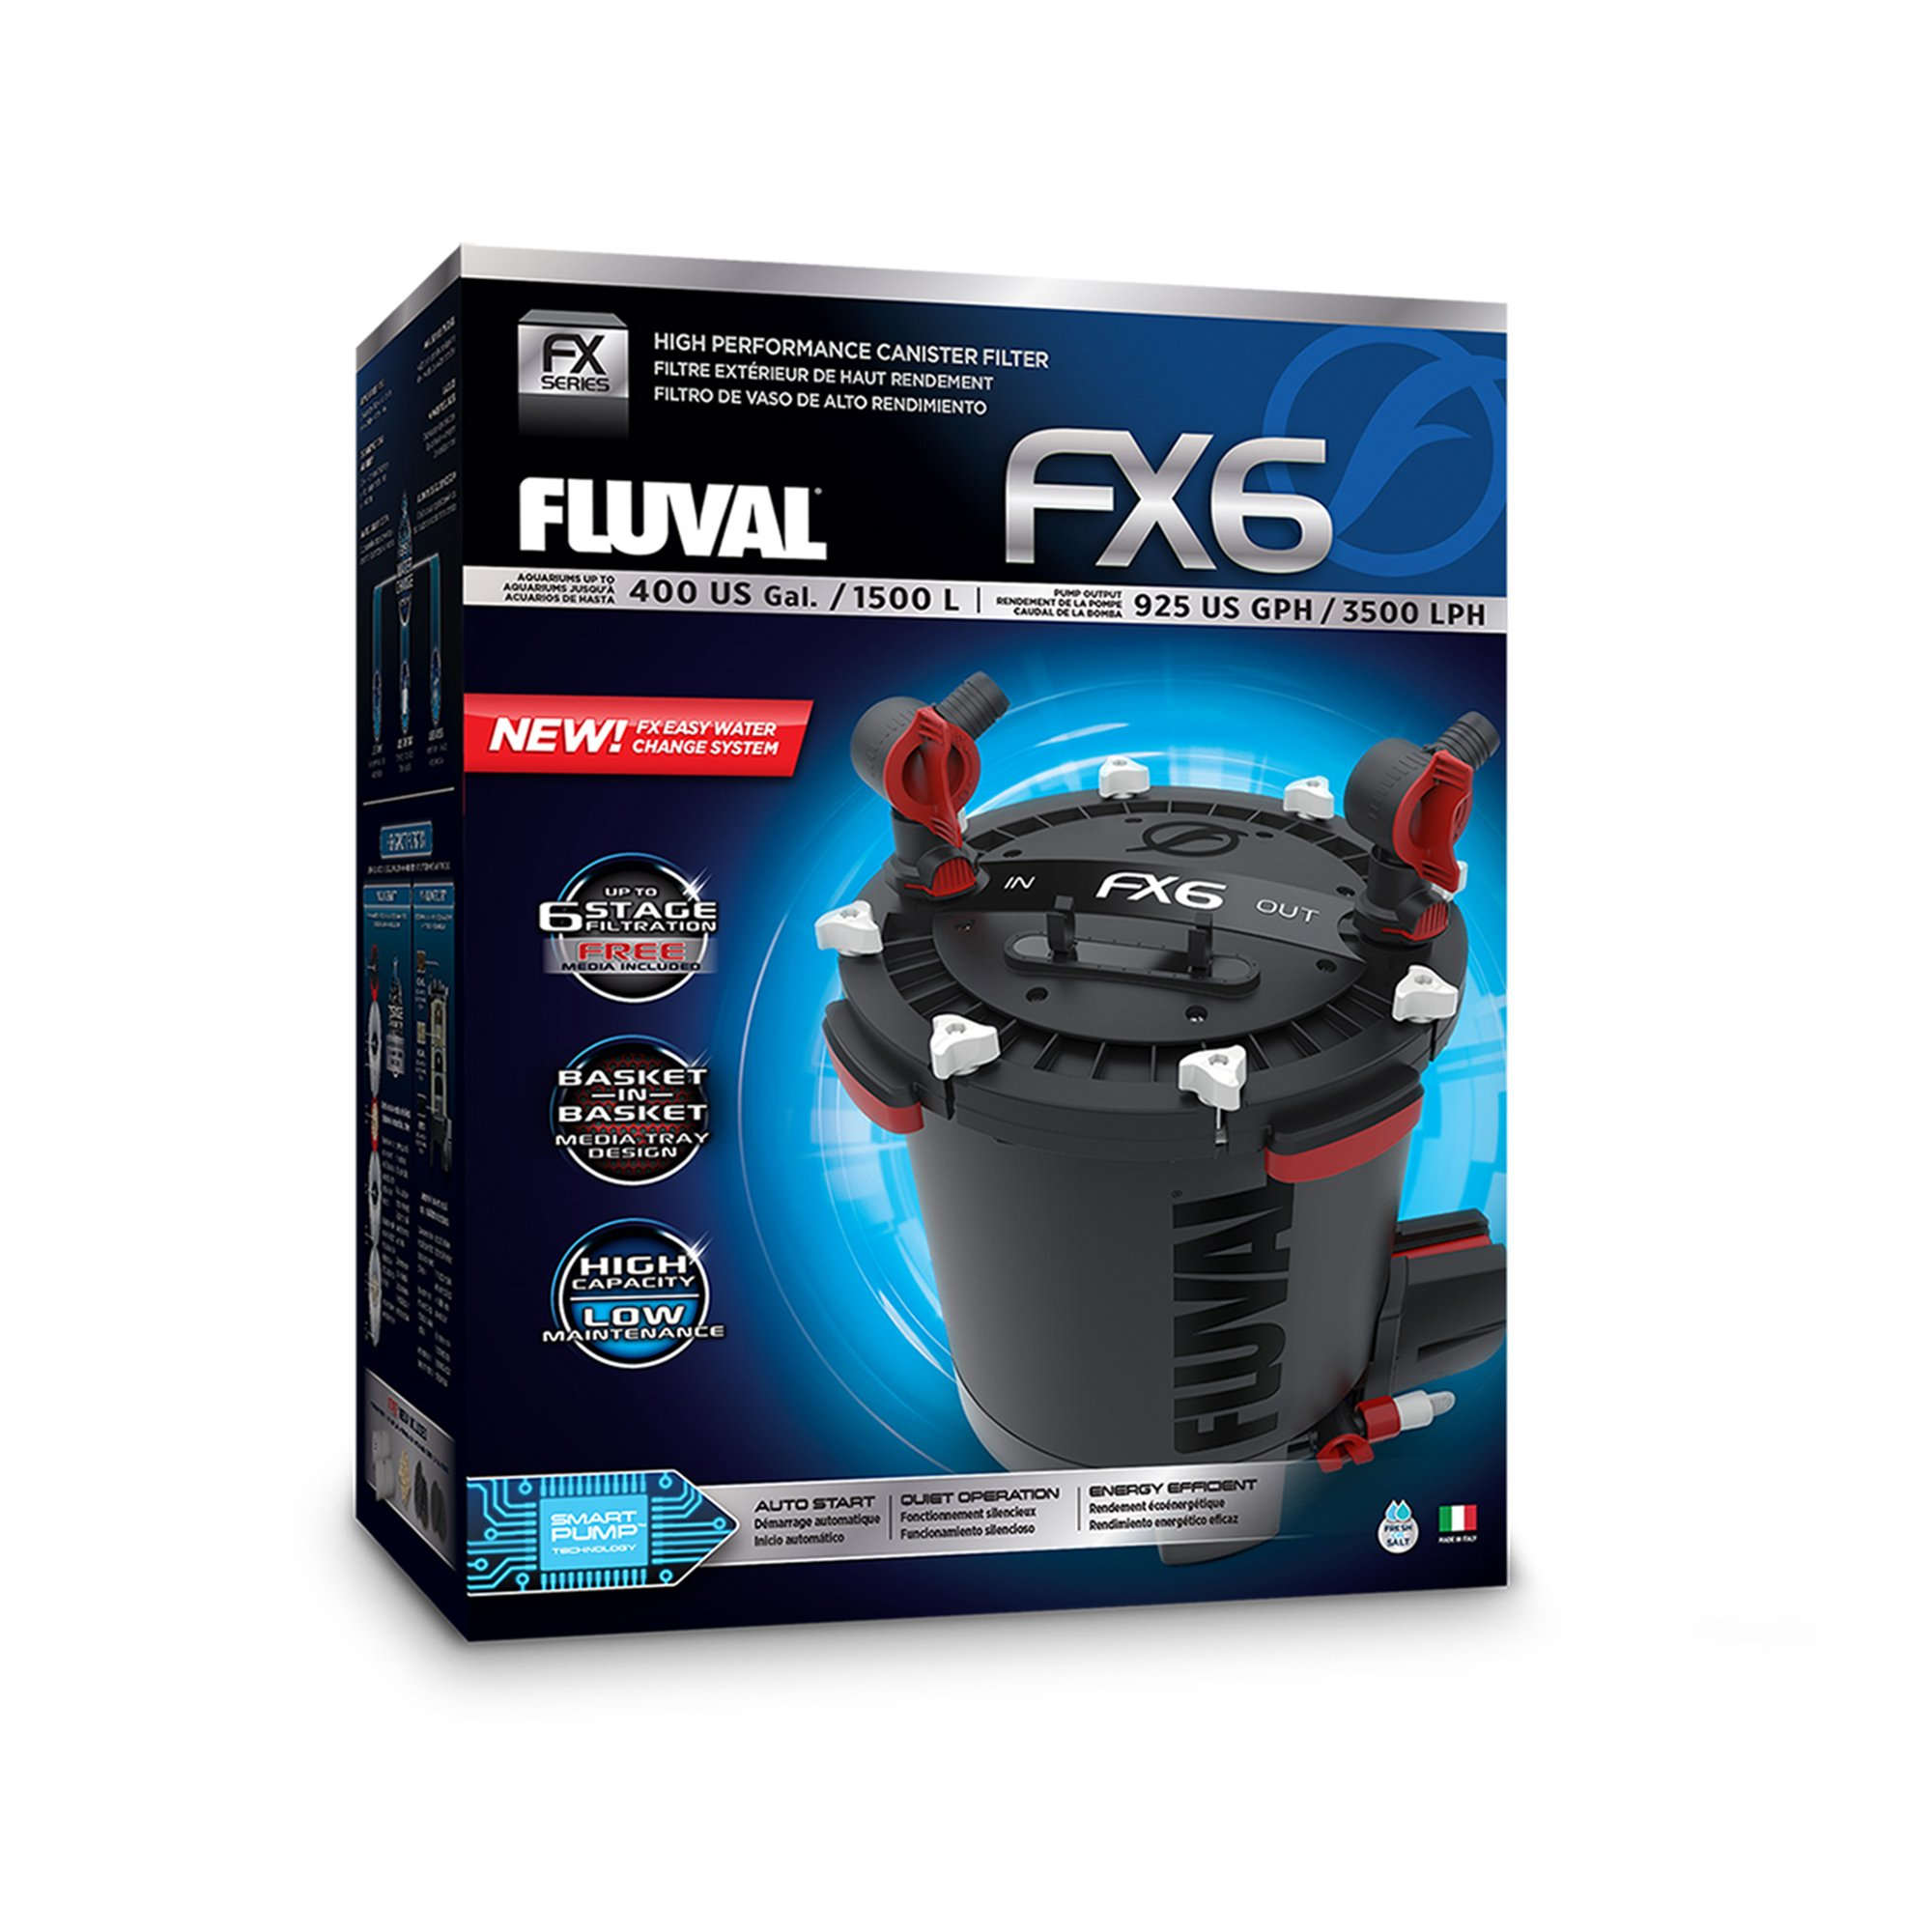 Fluval fx6 canister filter petco store for Petco fish tank filters